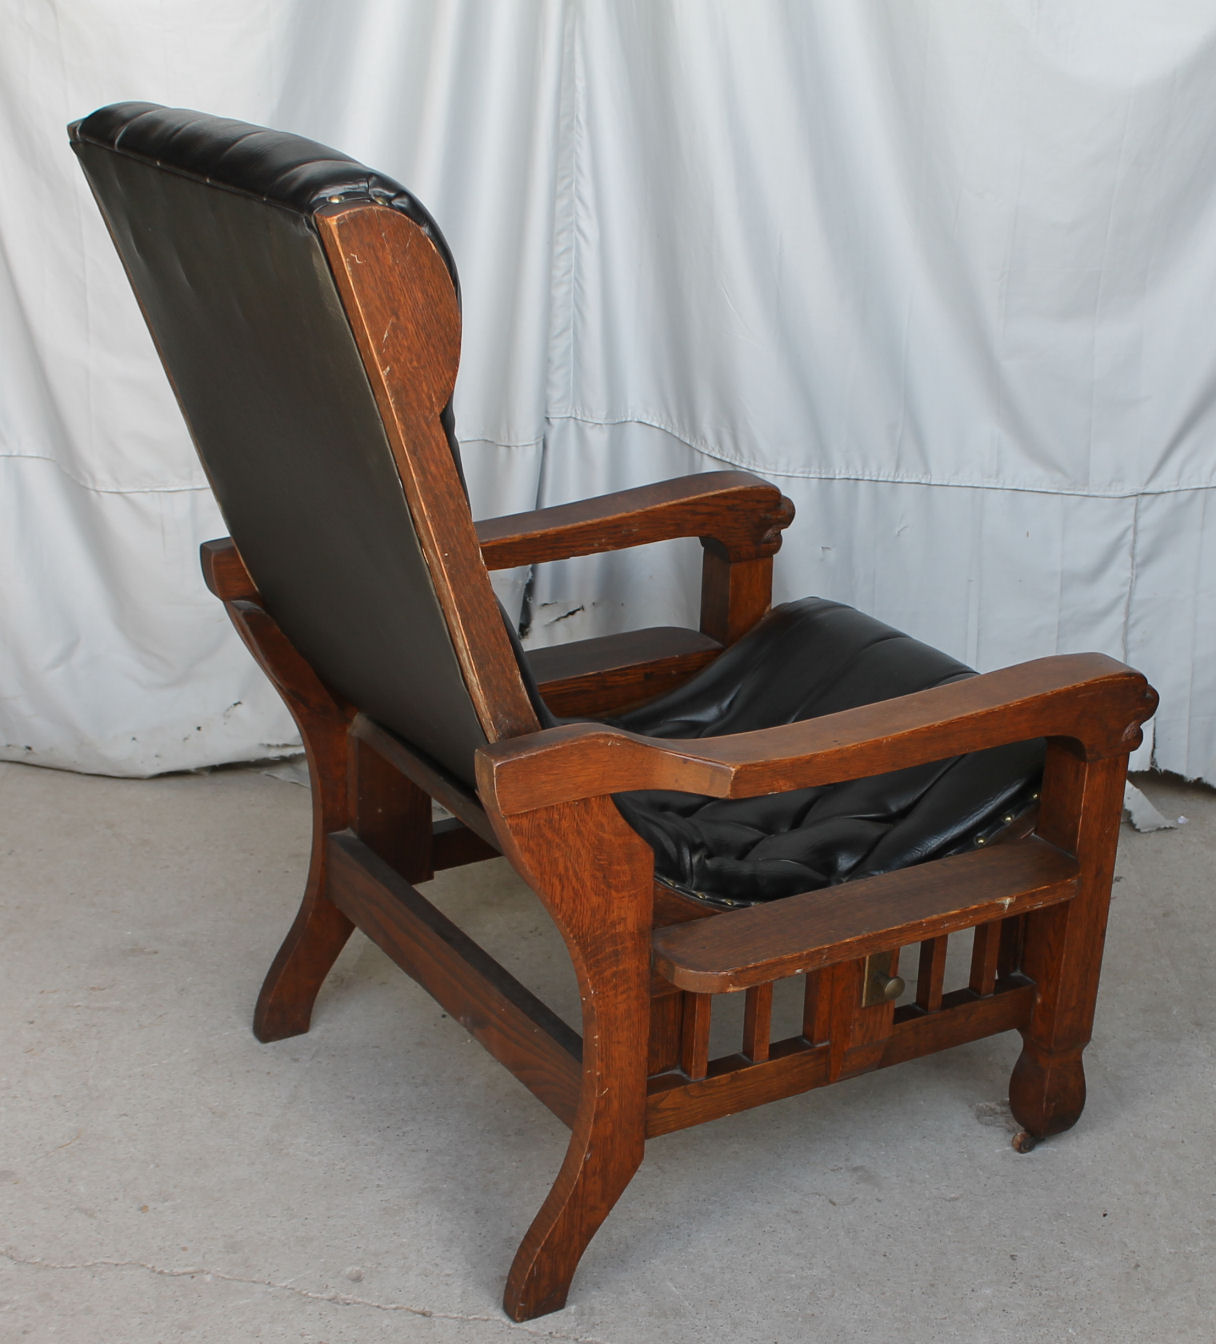 Bargain John S Antiques Rare Oak Morris Chair Unusual